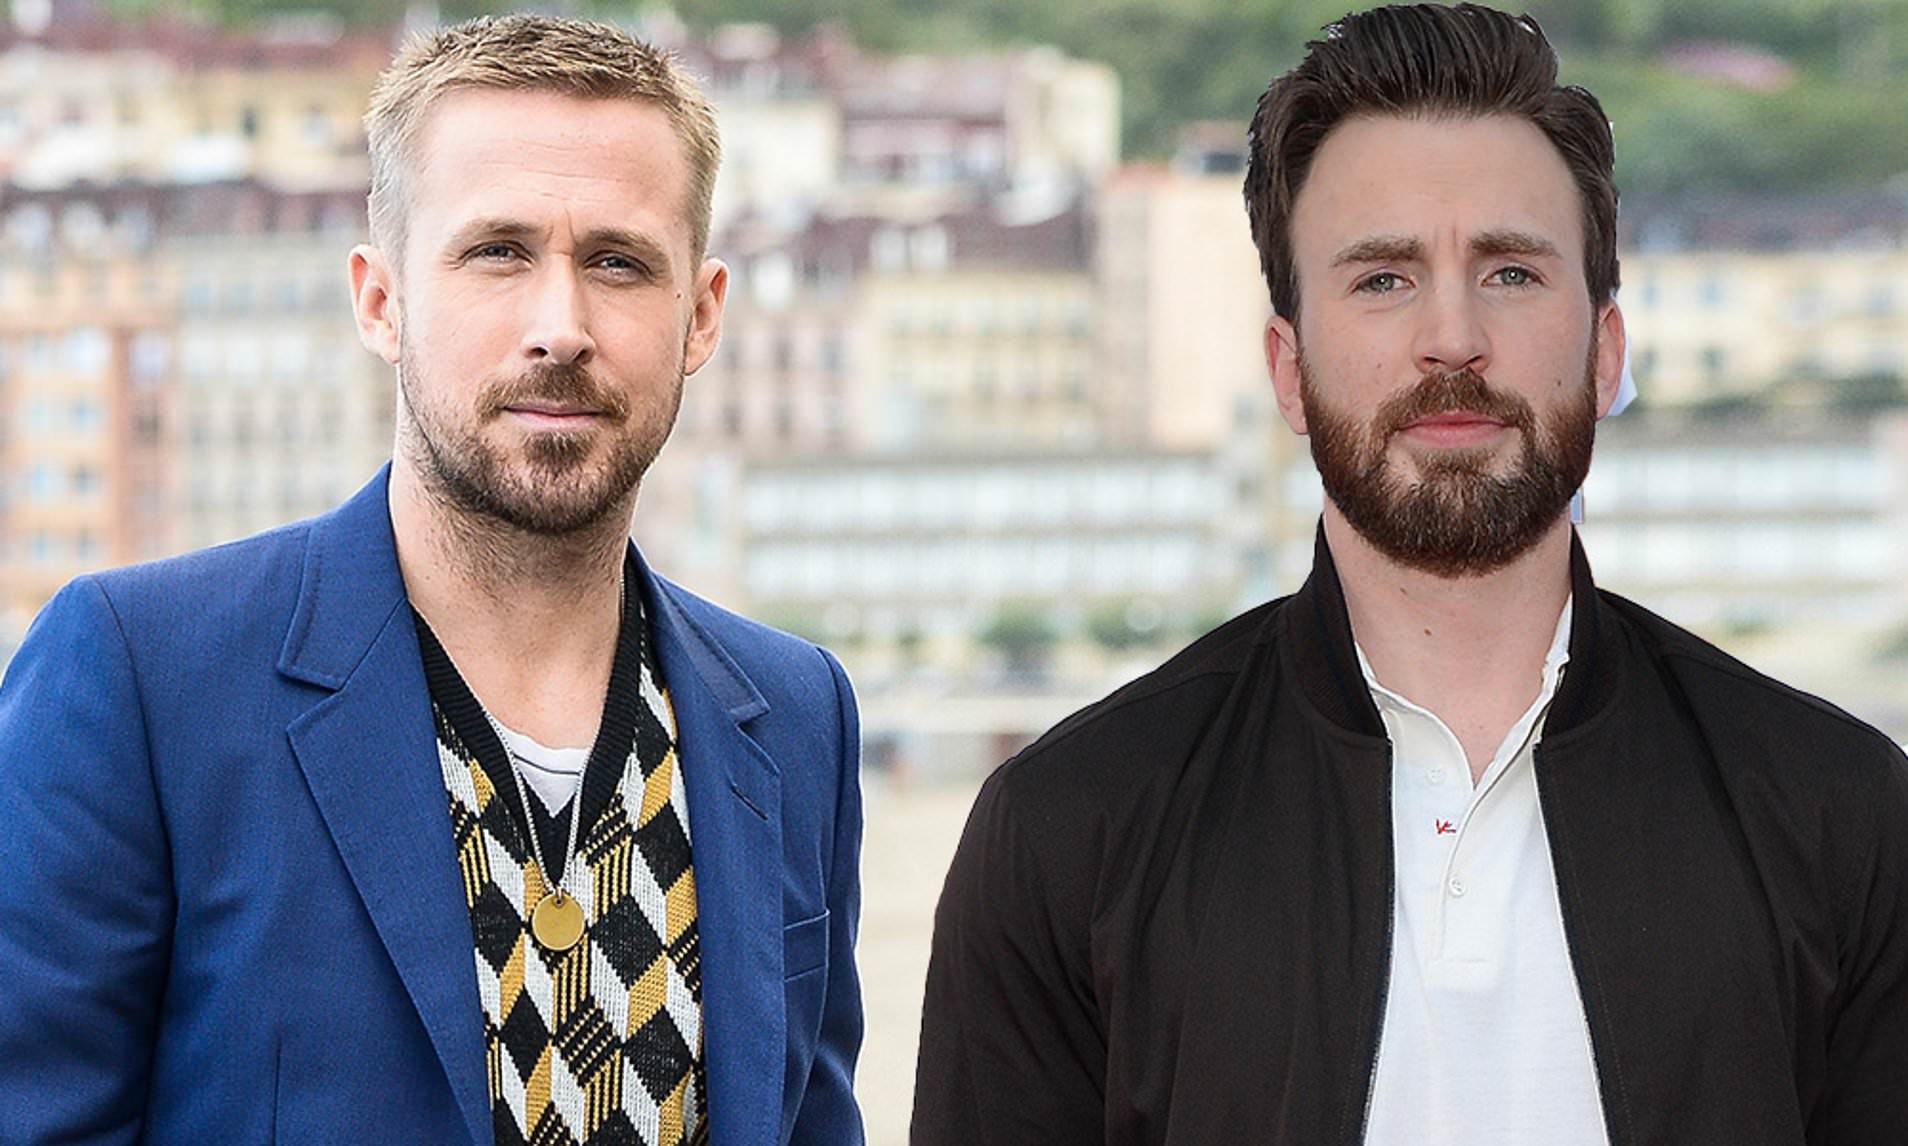 Is Chris Evans free to join the Star Wars Universe?